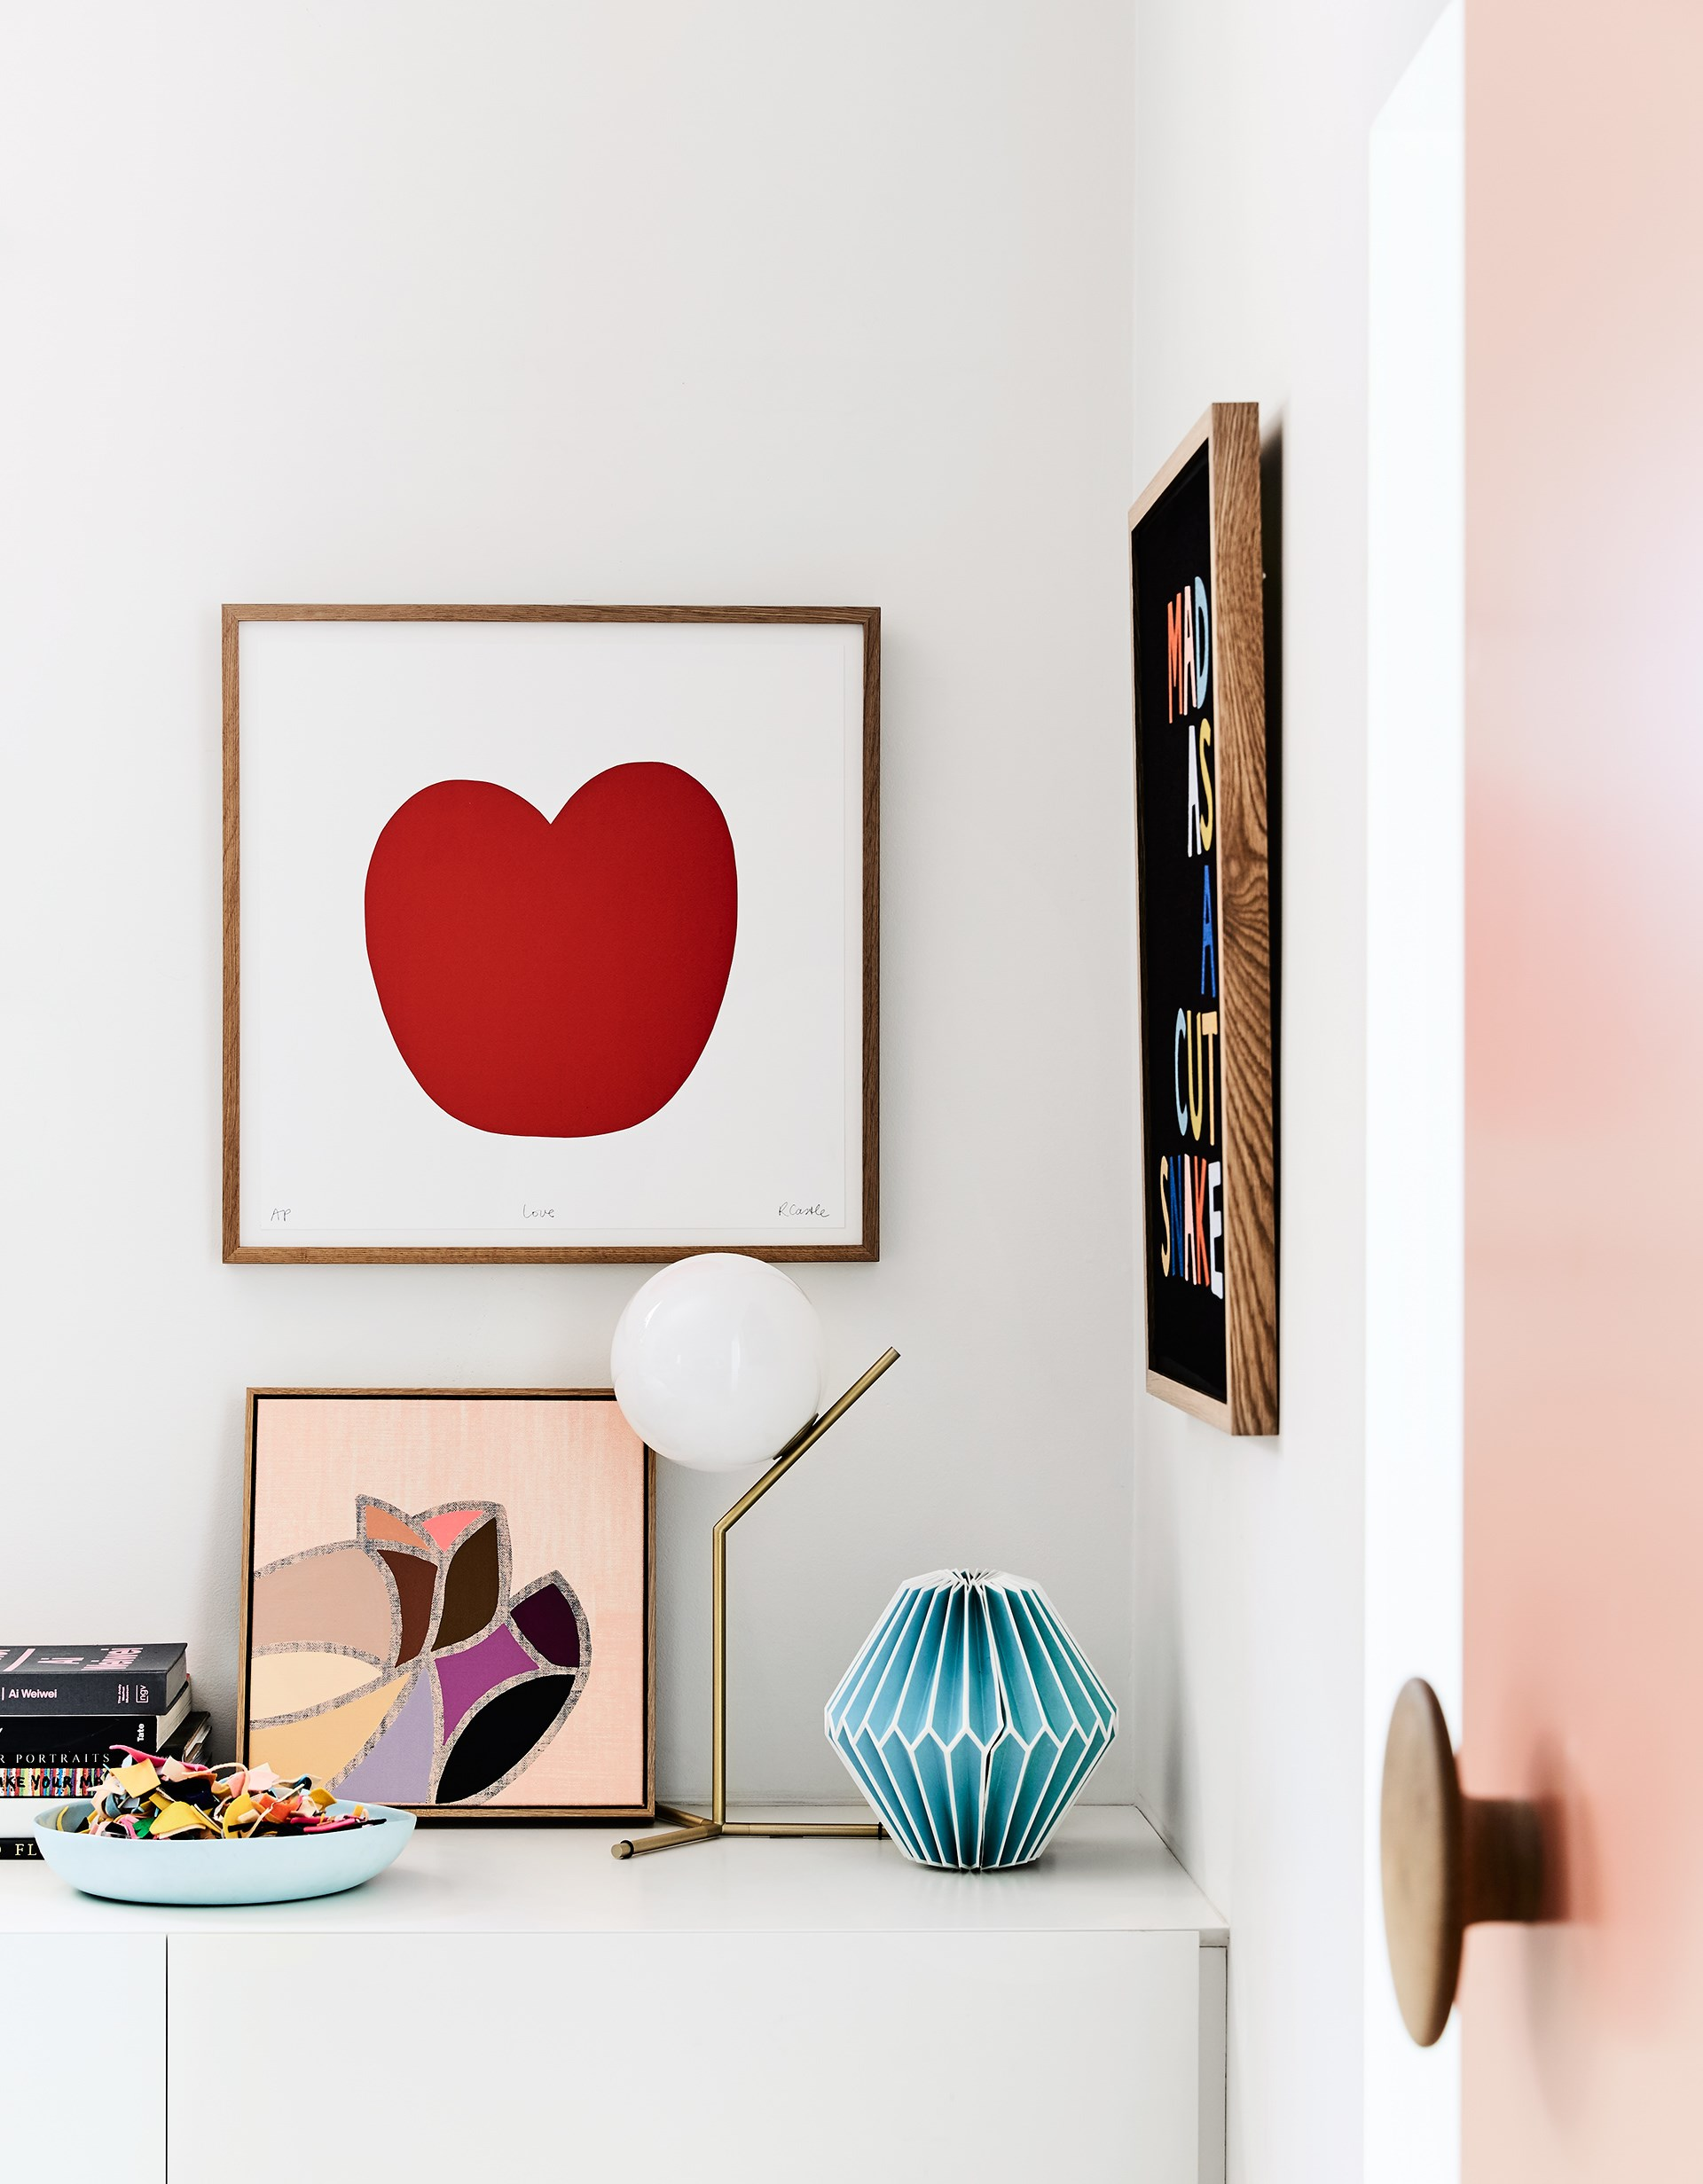 **Playful prints -**Nothings says 'I love you' more than a big fat love heart. This gorgeous print by Rachel Castle hangs in Rachel's own home office in her [colourful & quirky Sydney home](http://www.homestolove.com.au/rachel-castles-colourful-and-quirky-sydney-home-4729). Photo: Sharyn Cairns